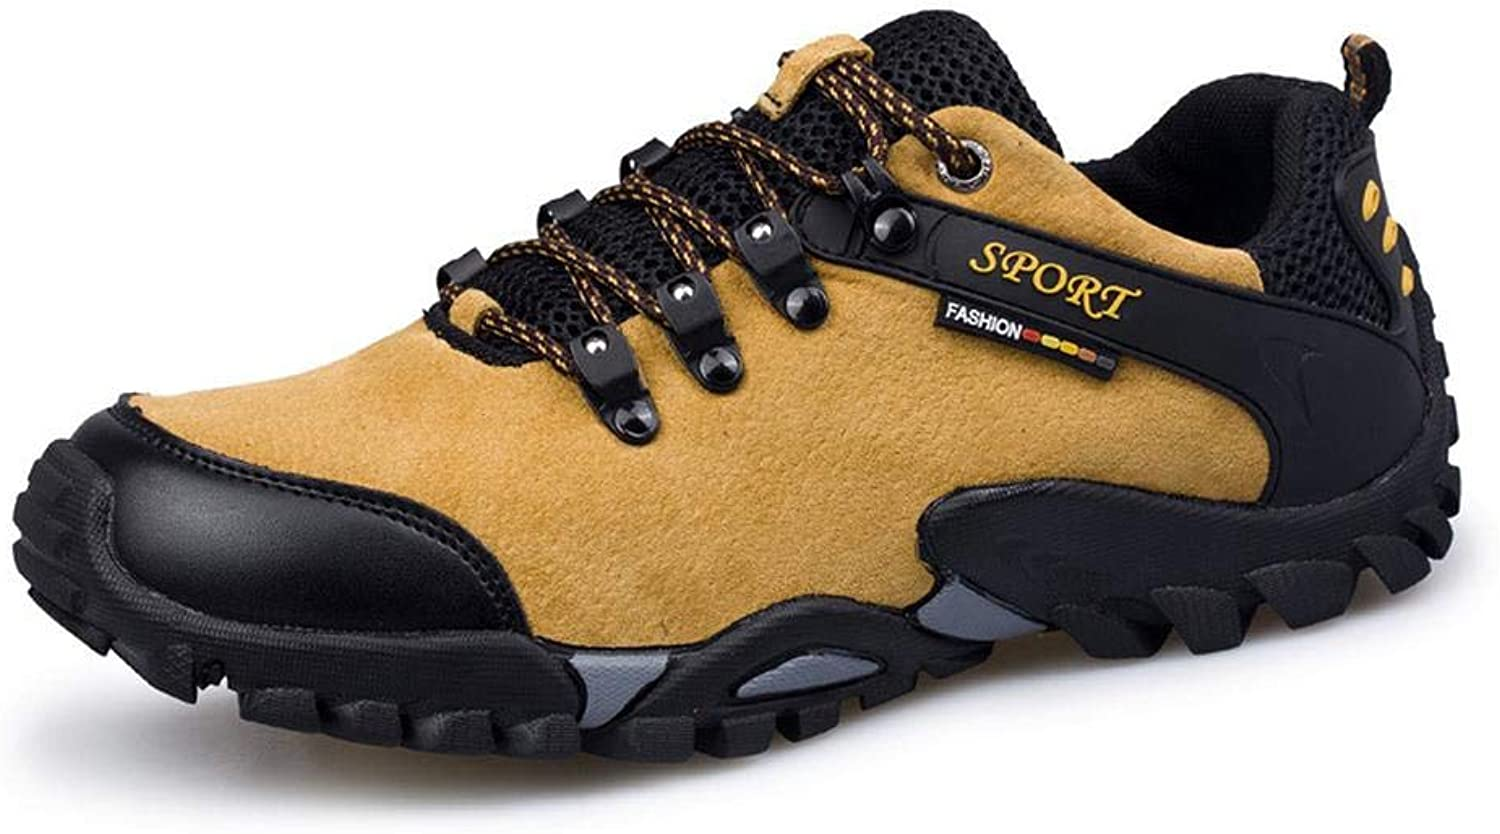 QIKAI Hiking shoes Men's outdoor cross-country fashion hiking shoes autumn and winter non-slip shoes leather material anti-collision Yellow-EU43 265mm UK9